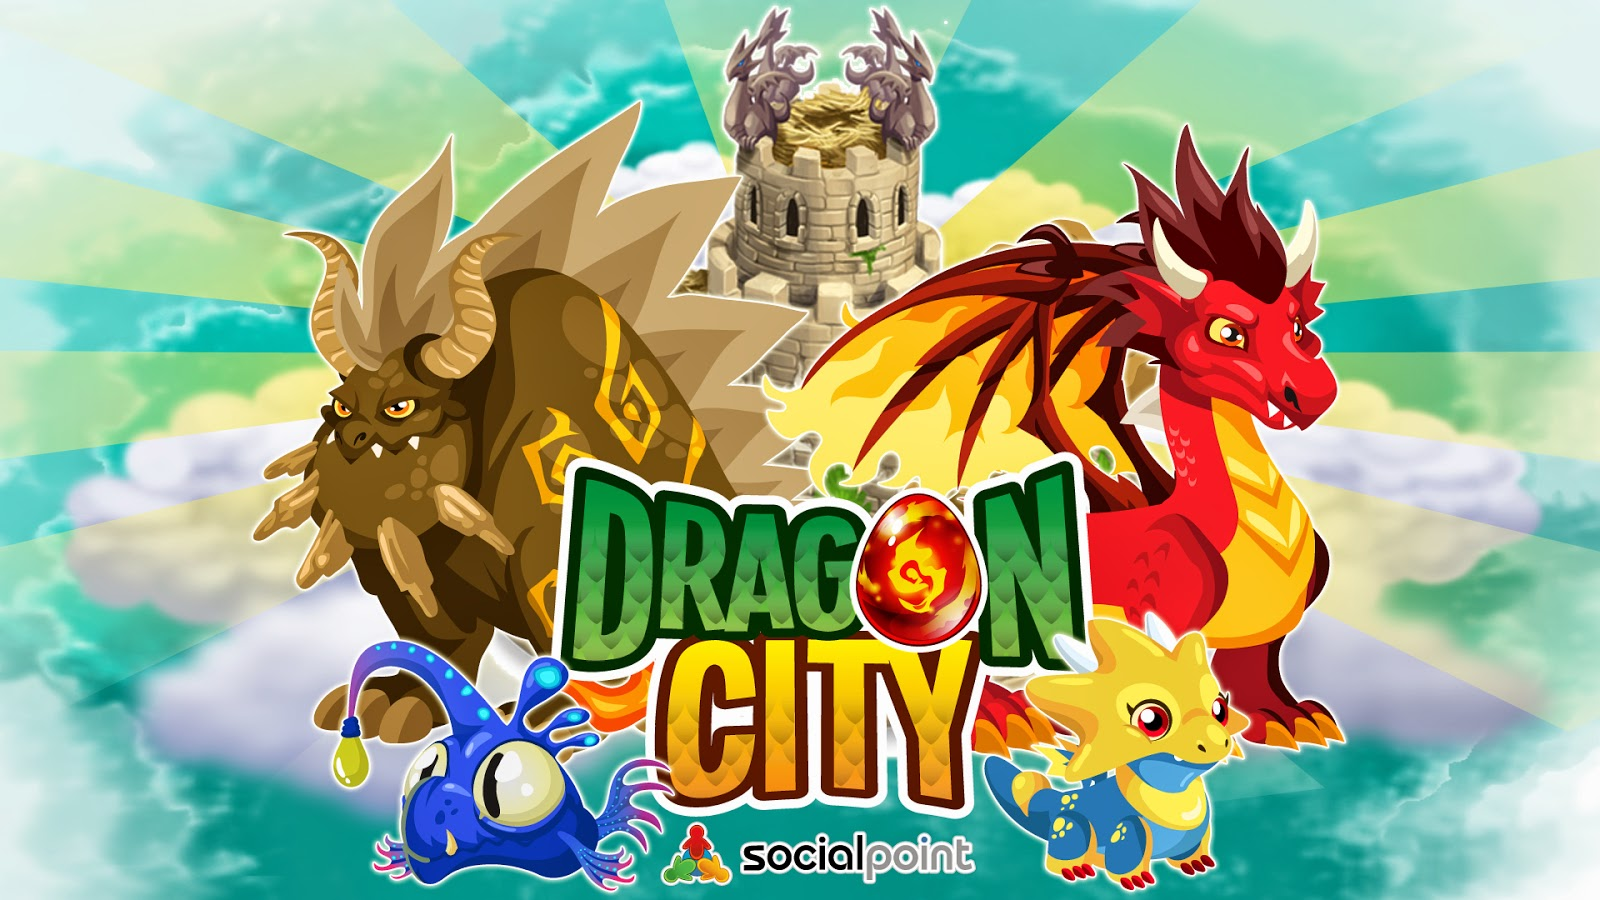 Softwaremuster.com/hack/dragoncity